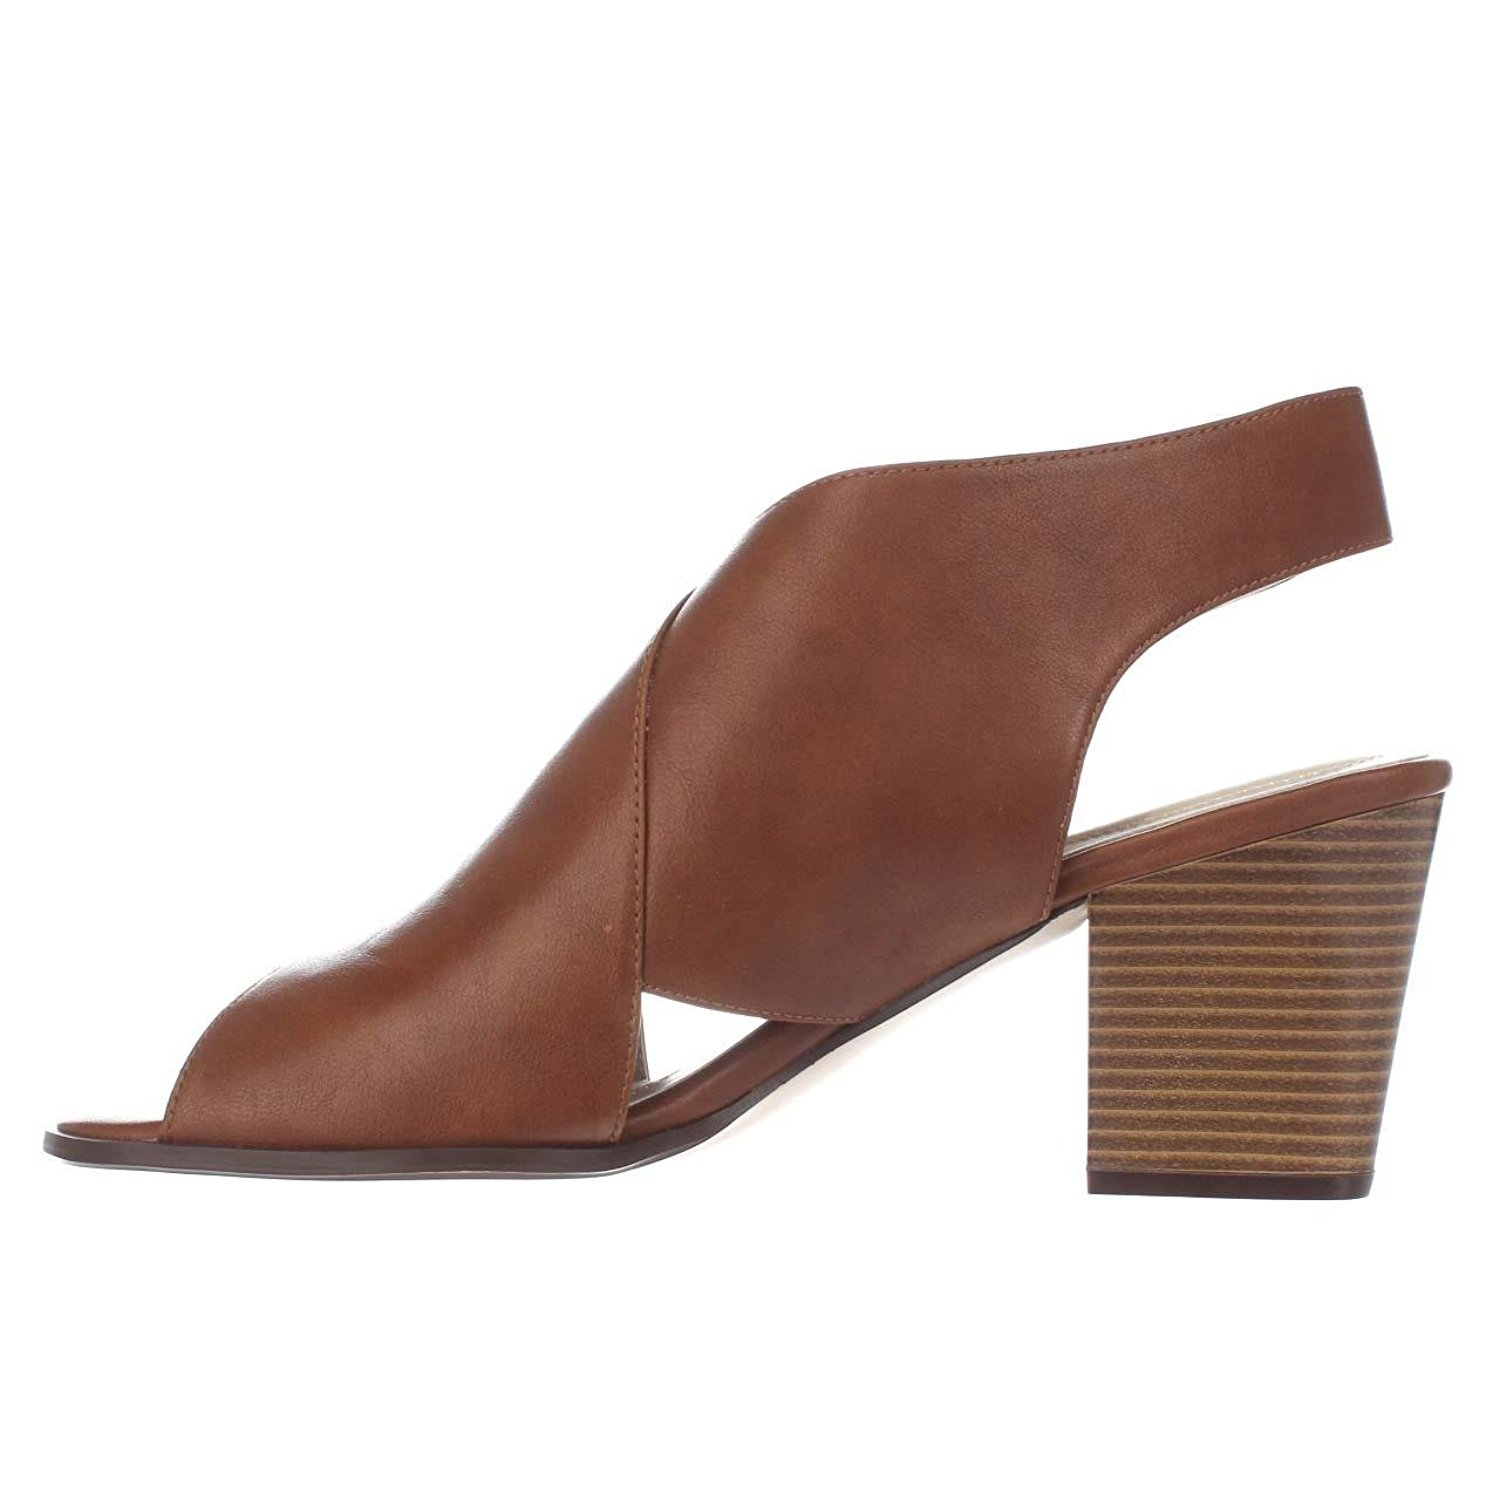 Style & Co. Womens Danyell Open Toe Casual Mule Sandals, Saddle, Size 6.5